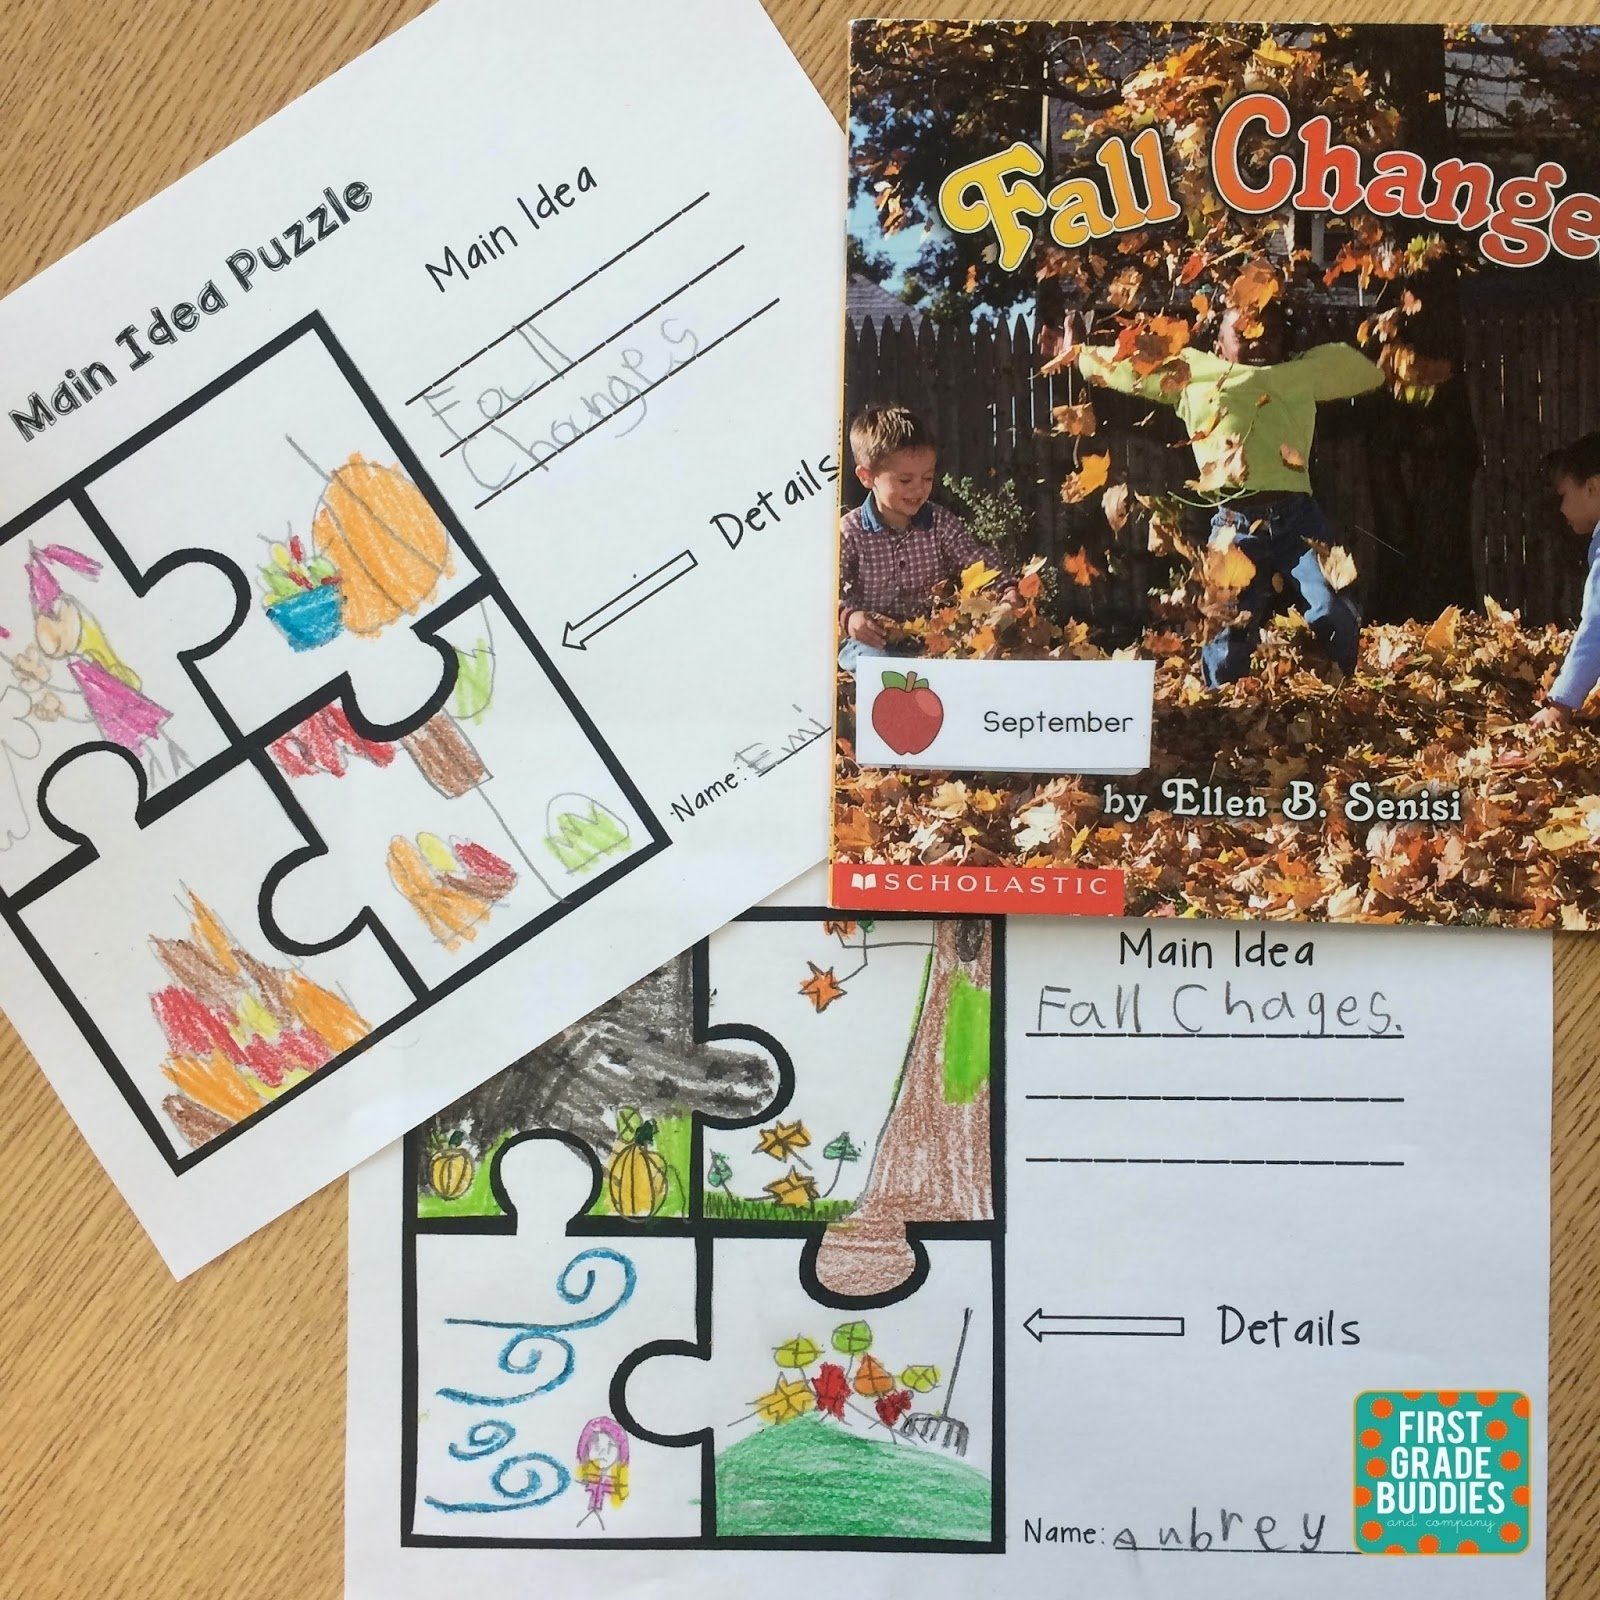 10 Stunning Main Idea Of A Book first grade buddies determining the central message and identifying 3 2021